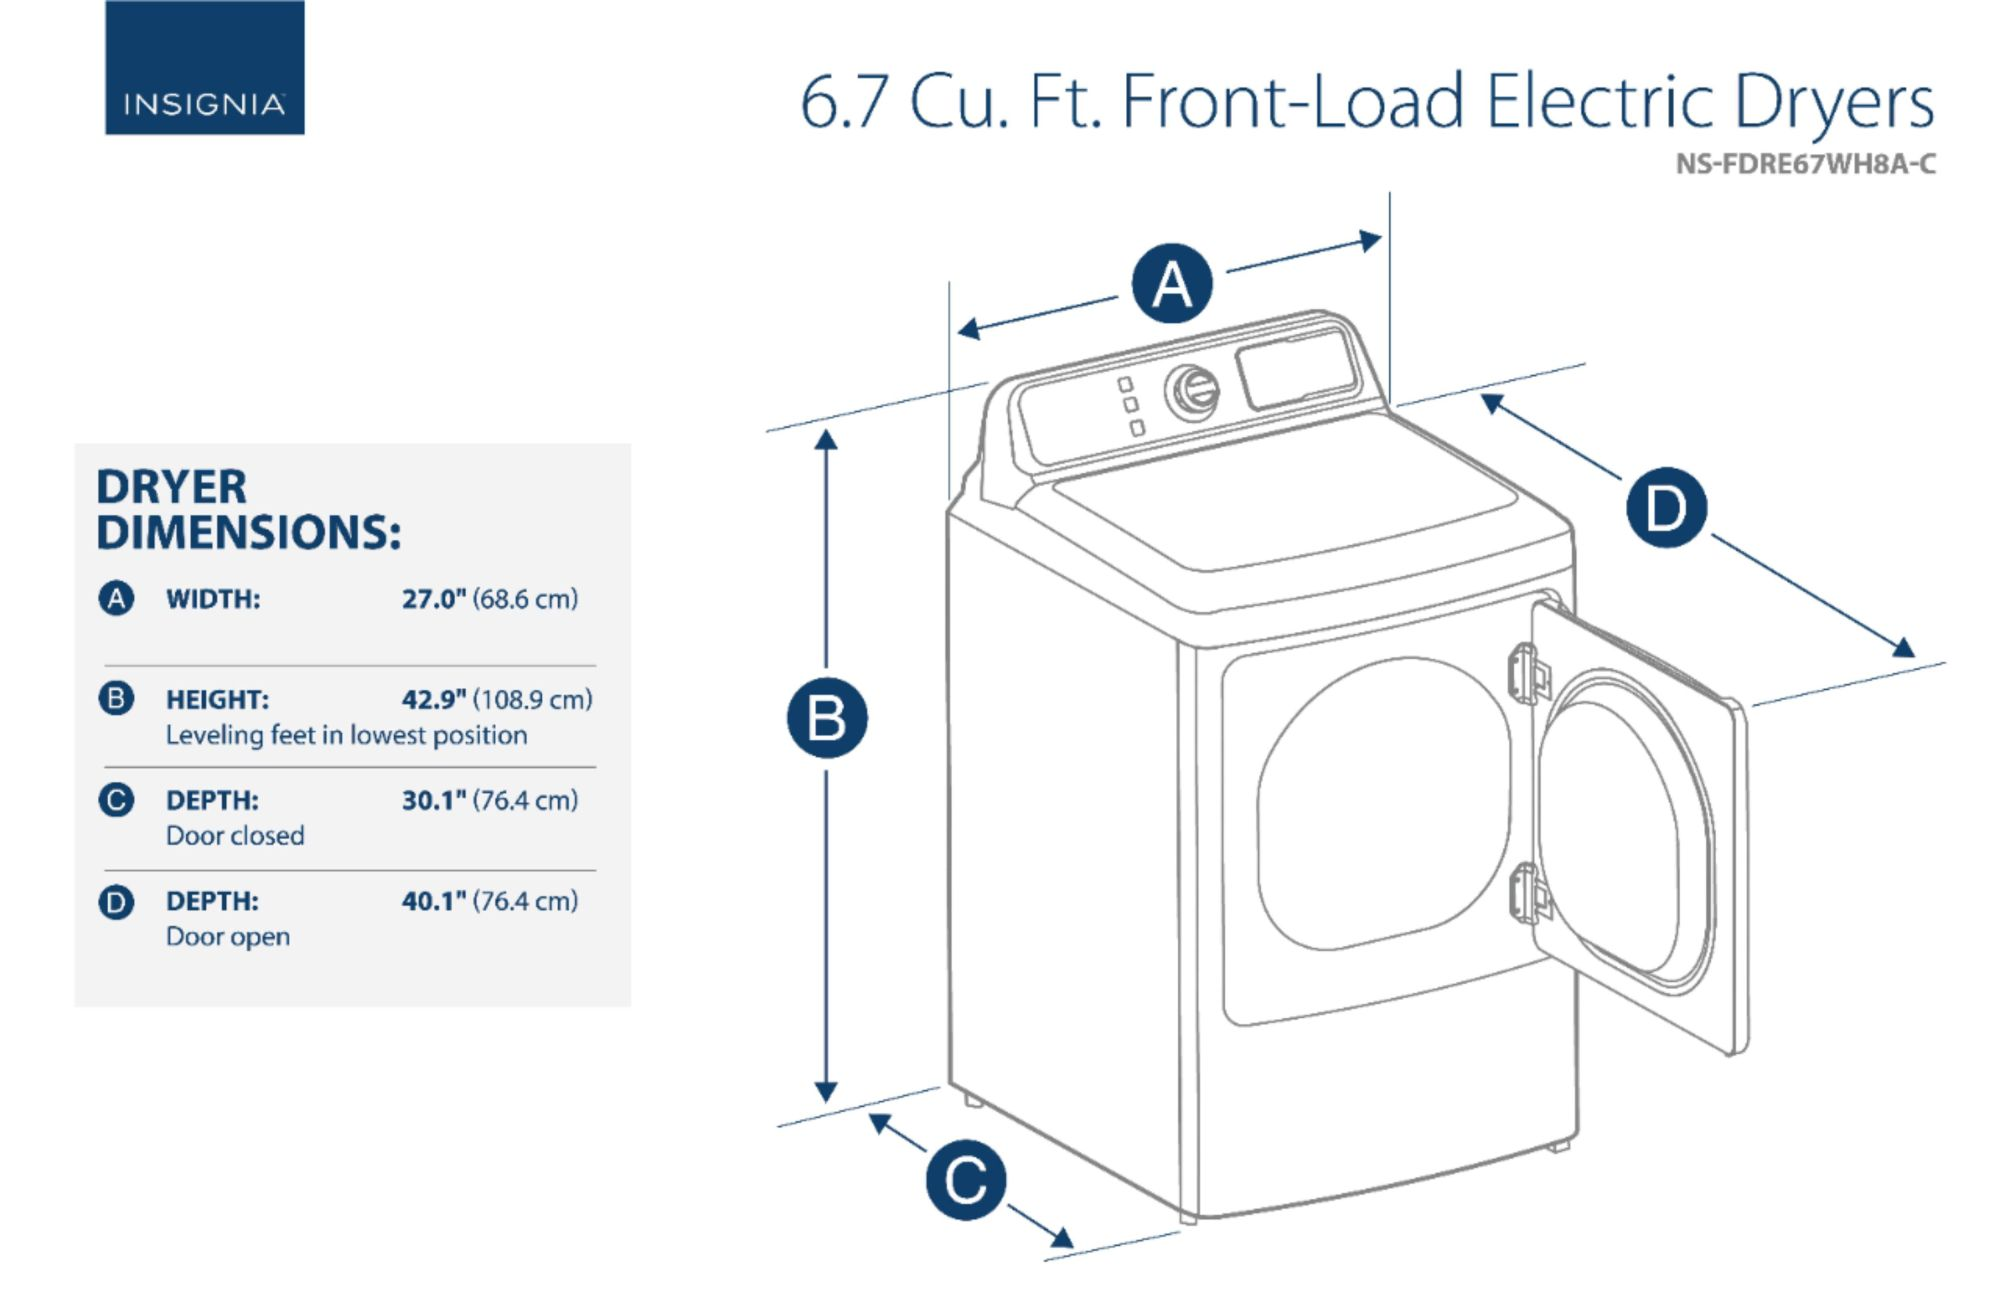 hight resolution of ft 10 cycle electric dryer white ns fdre67wh8a best buy